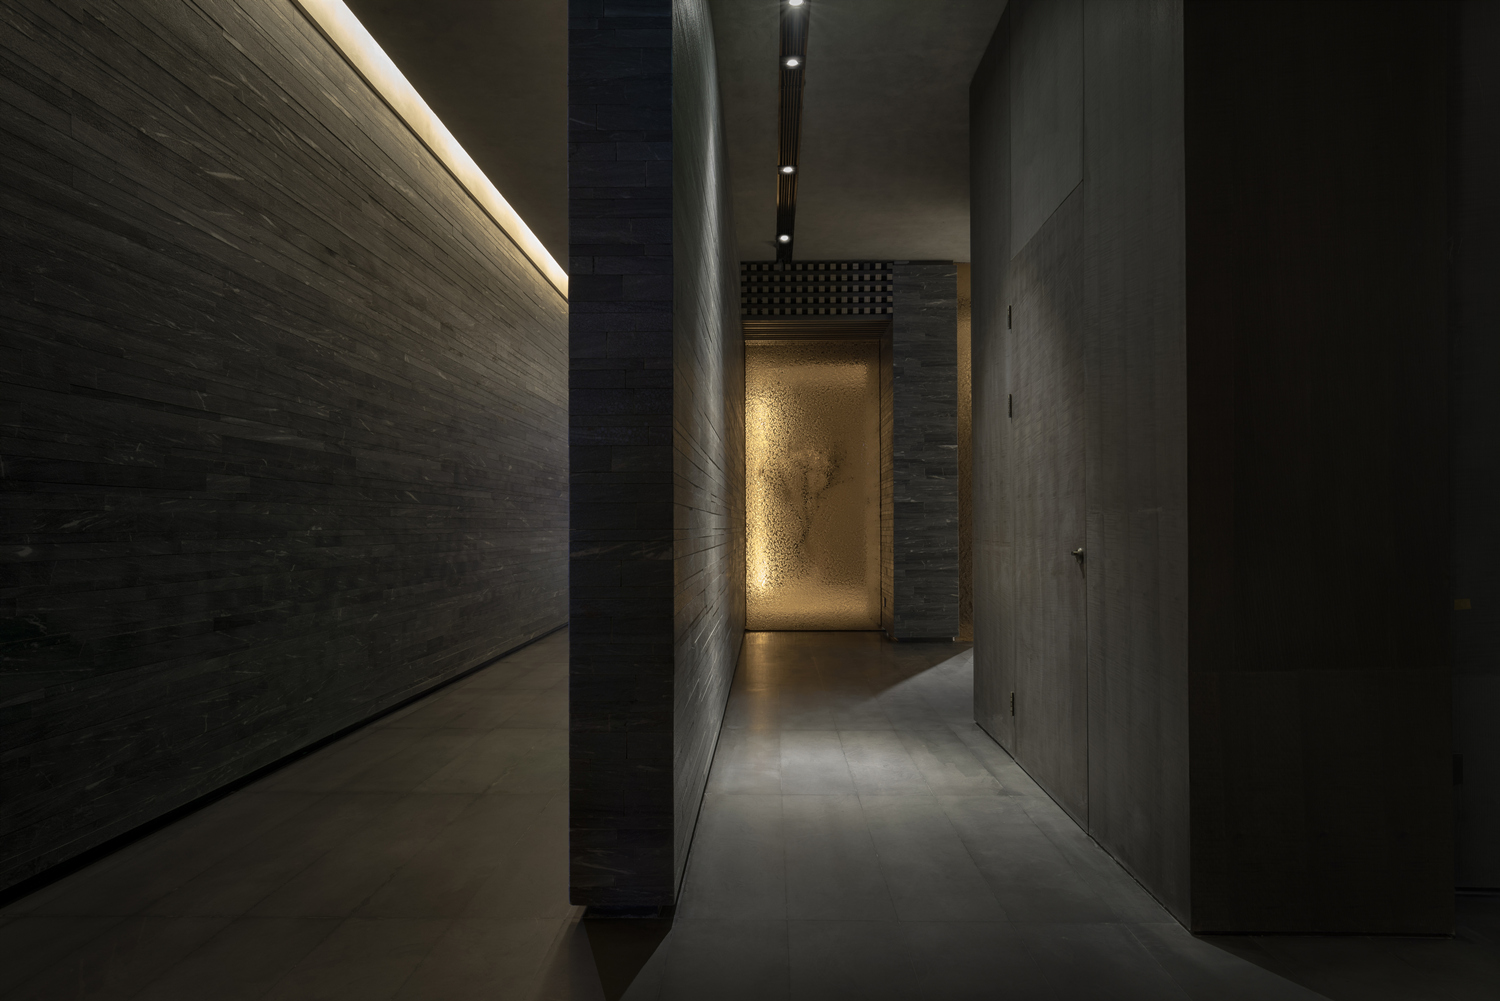 The end of the corridor A. GUANG